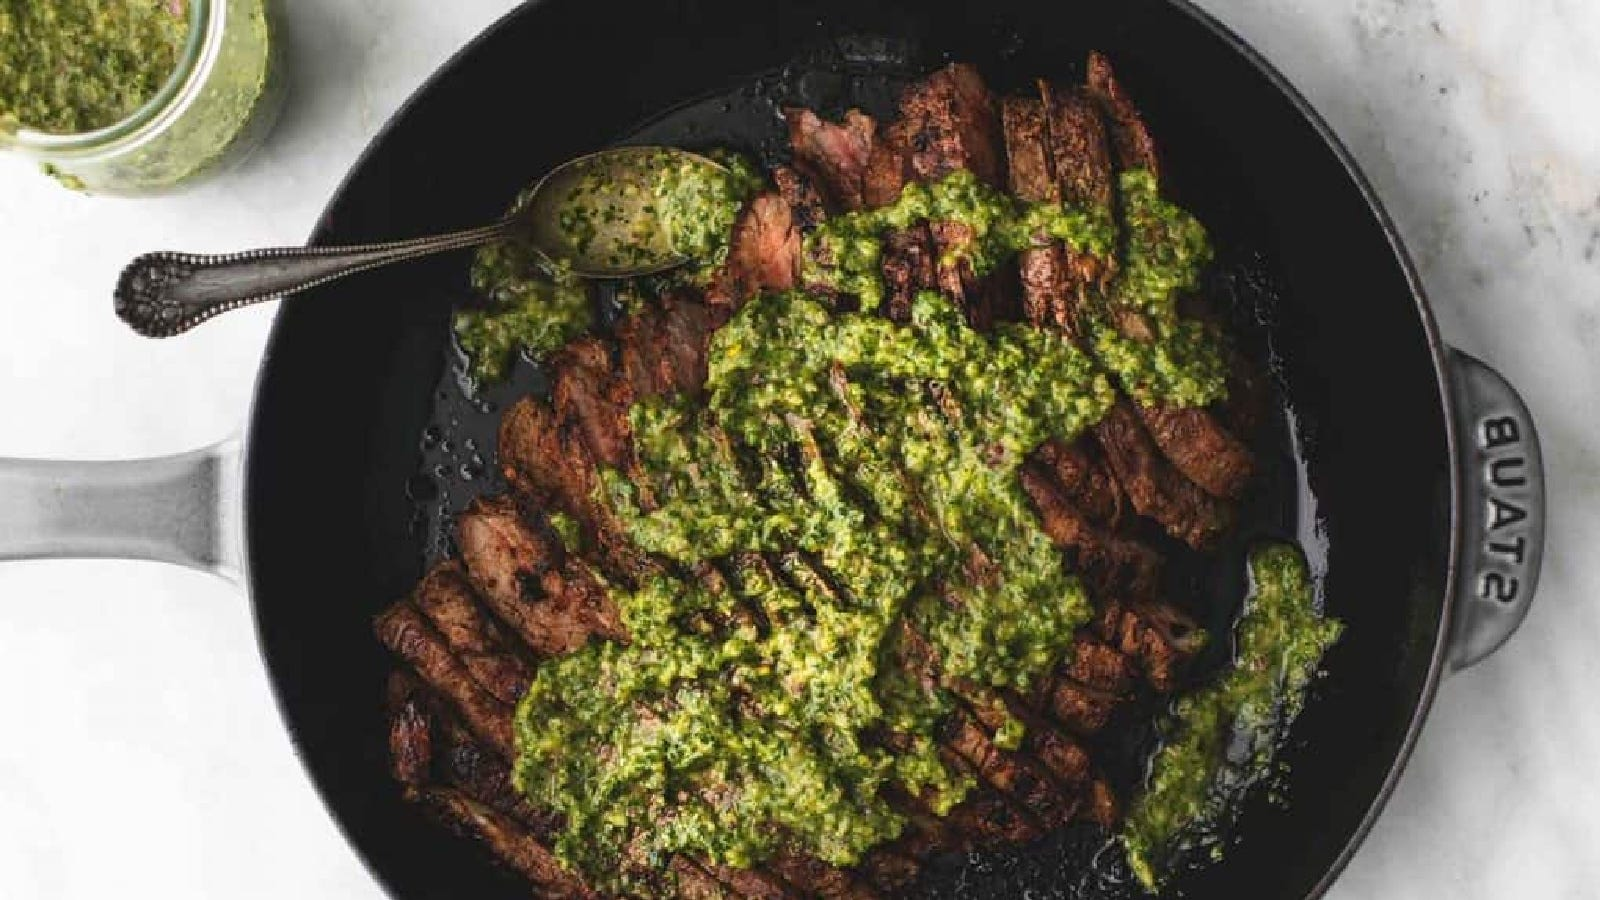 A staub enameled cast iron skillet filled flank steak, cut against the grain smothered with scratch chimmichurri sauce.